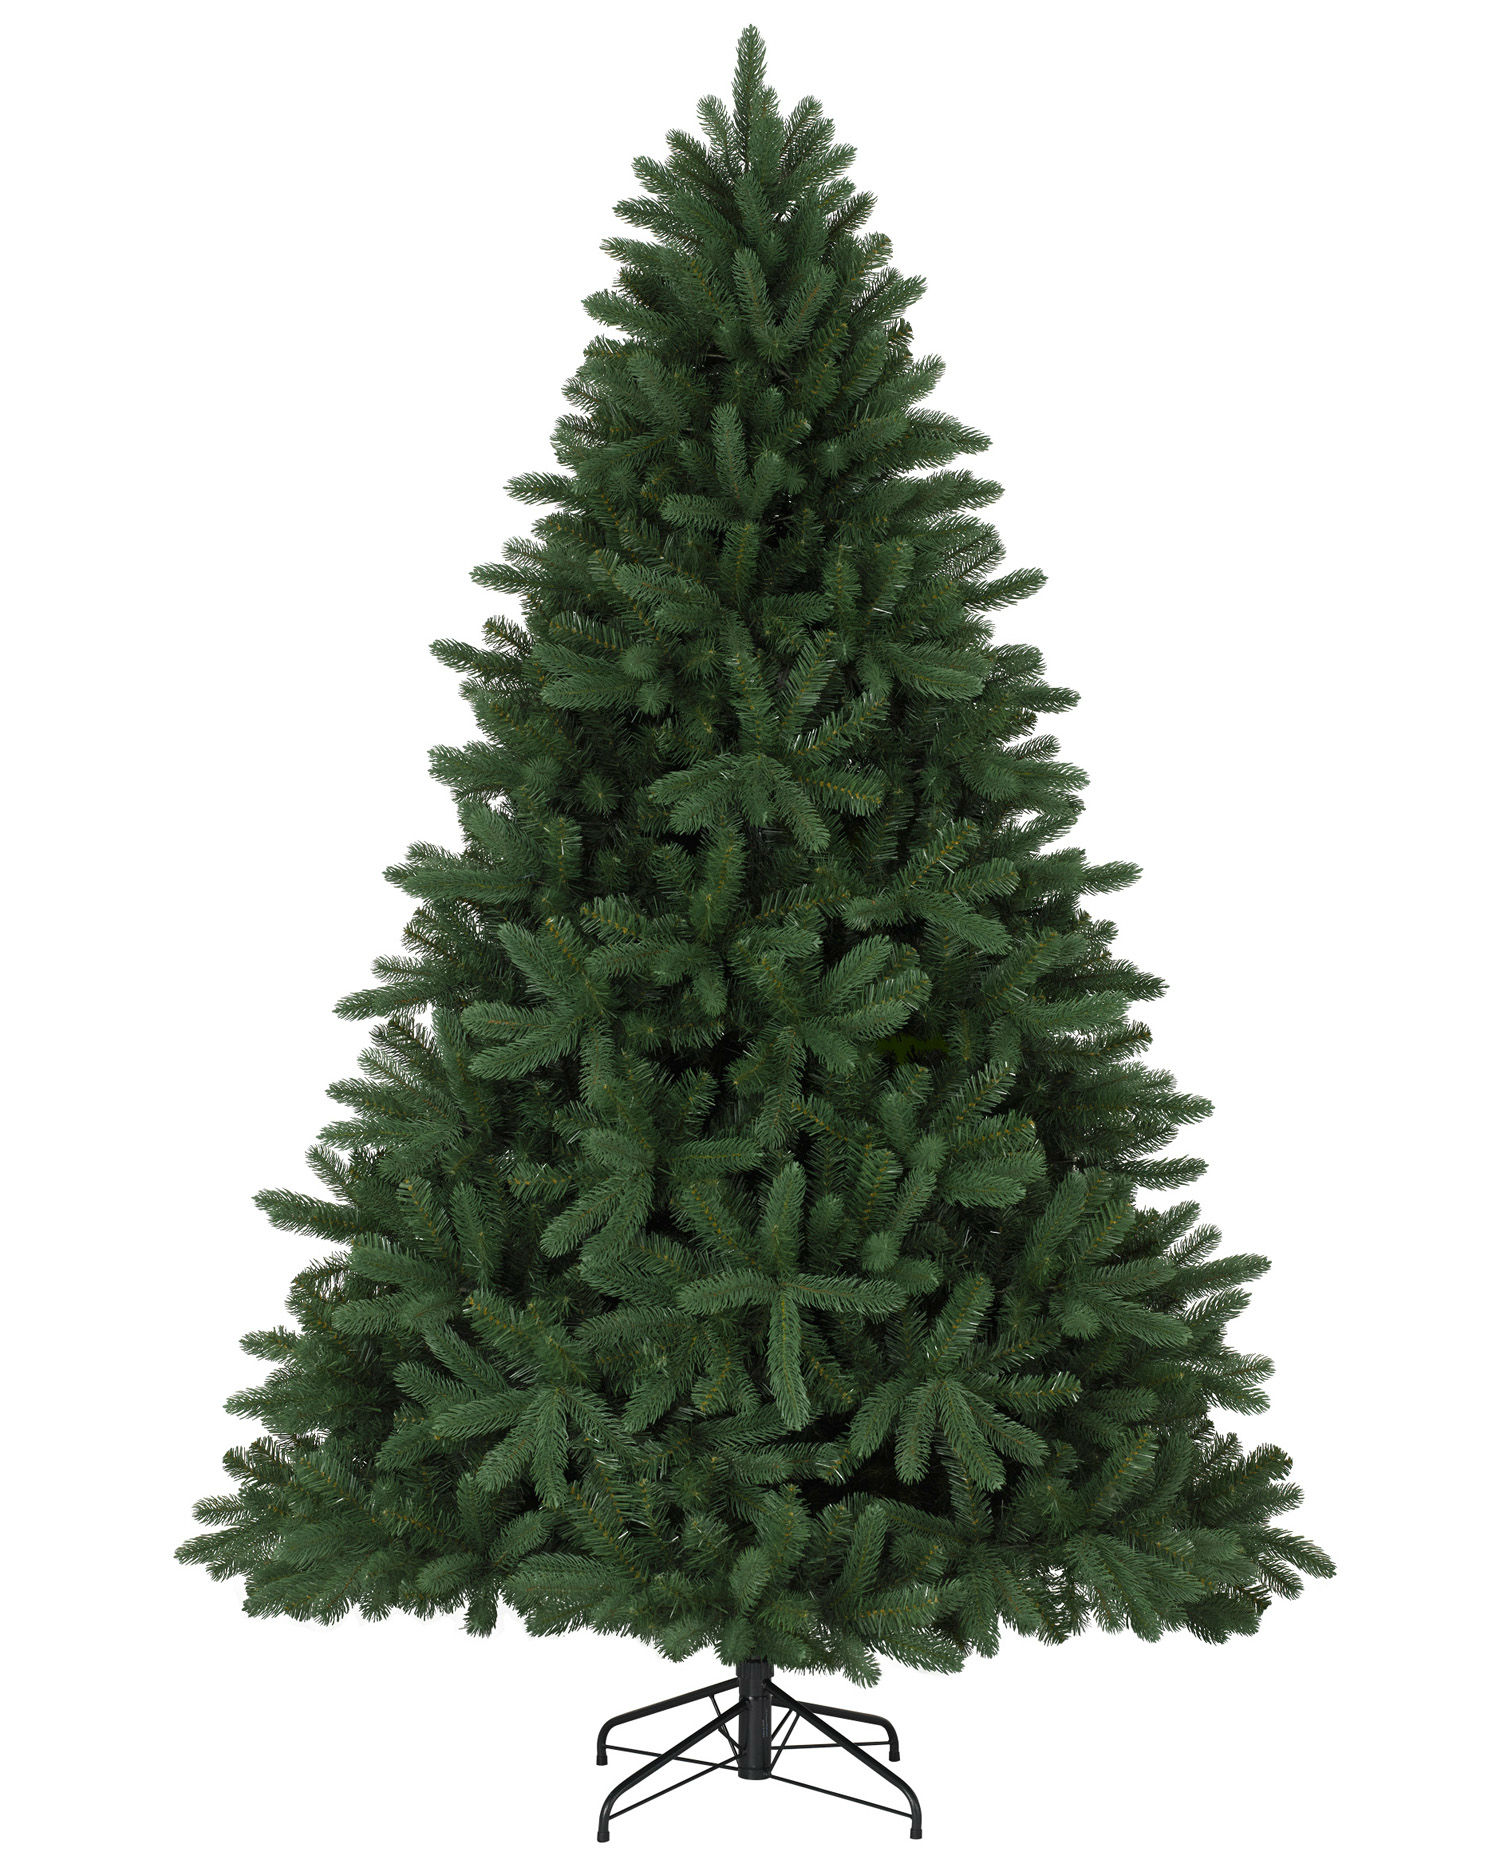 8 ft Alberta Spruce Evergreen Unlit Tree | Christmas Tree Market